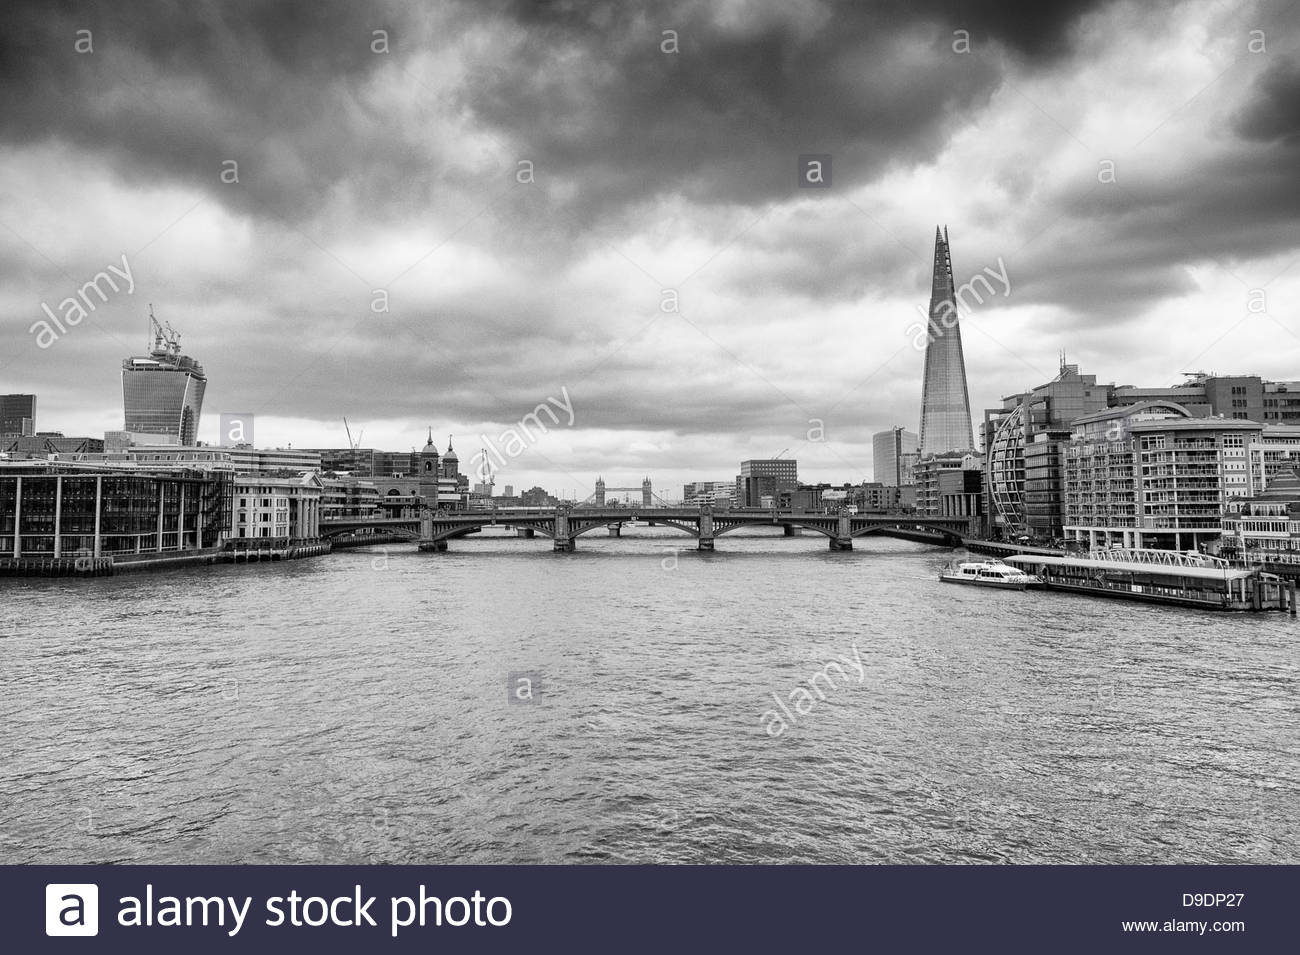 The River Thames, The Shard and City Skyline from the Millennium Bridge, London, England, United Kingdom 2013, Black - Stock Image